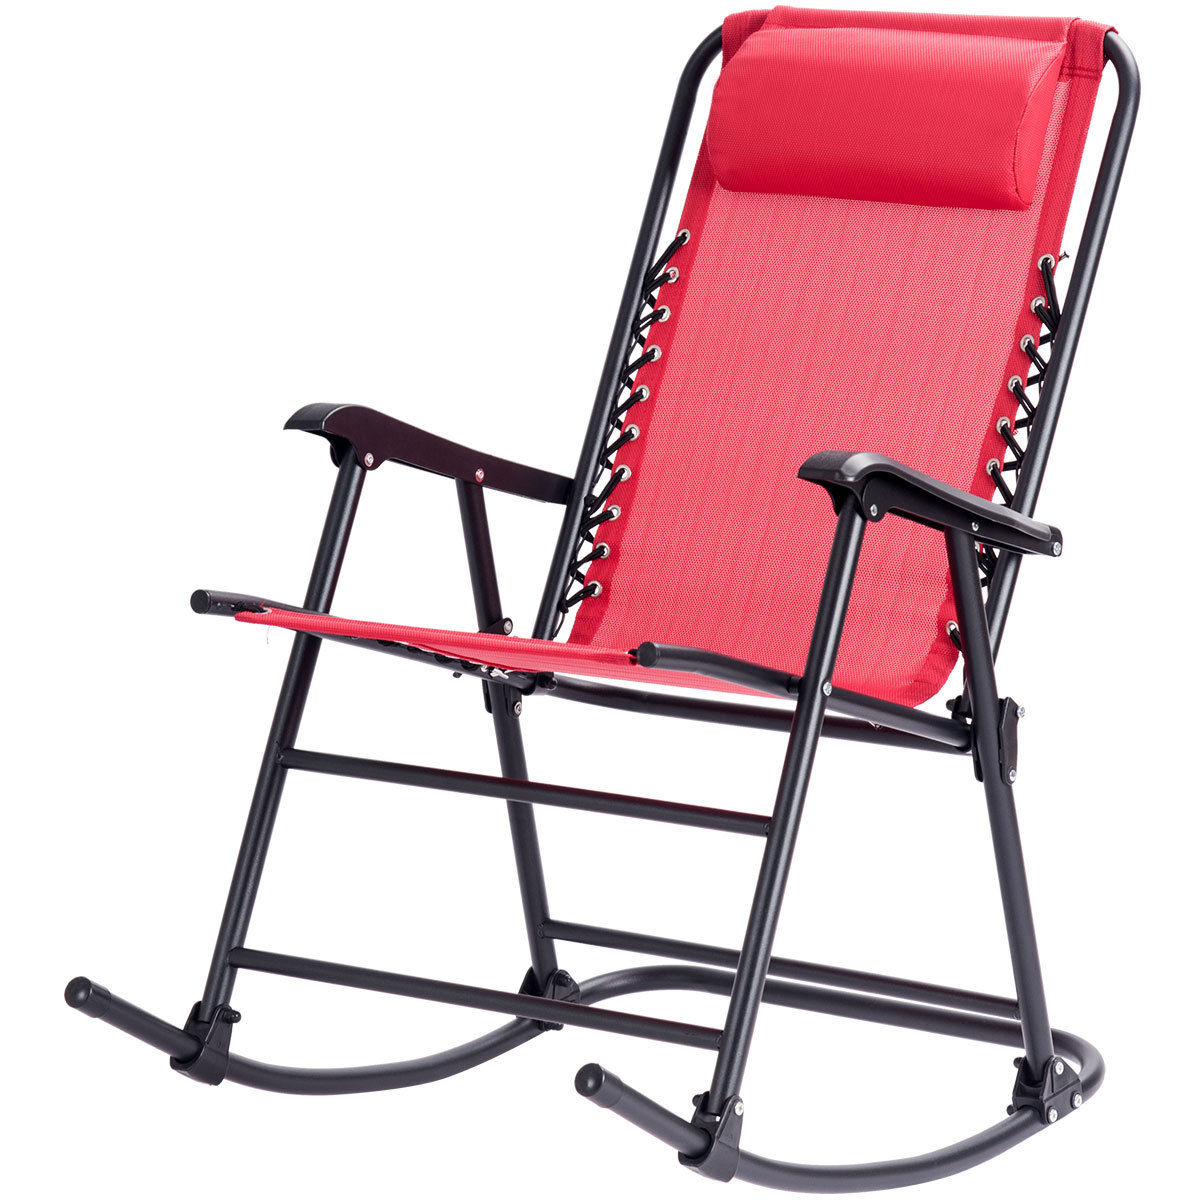 Costway Folding Zero Gravity Rocking Chair Rocker Porch Outdoor Patio Headrest Red